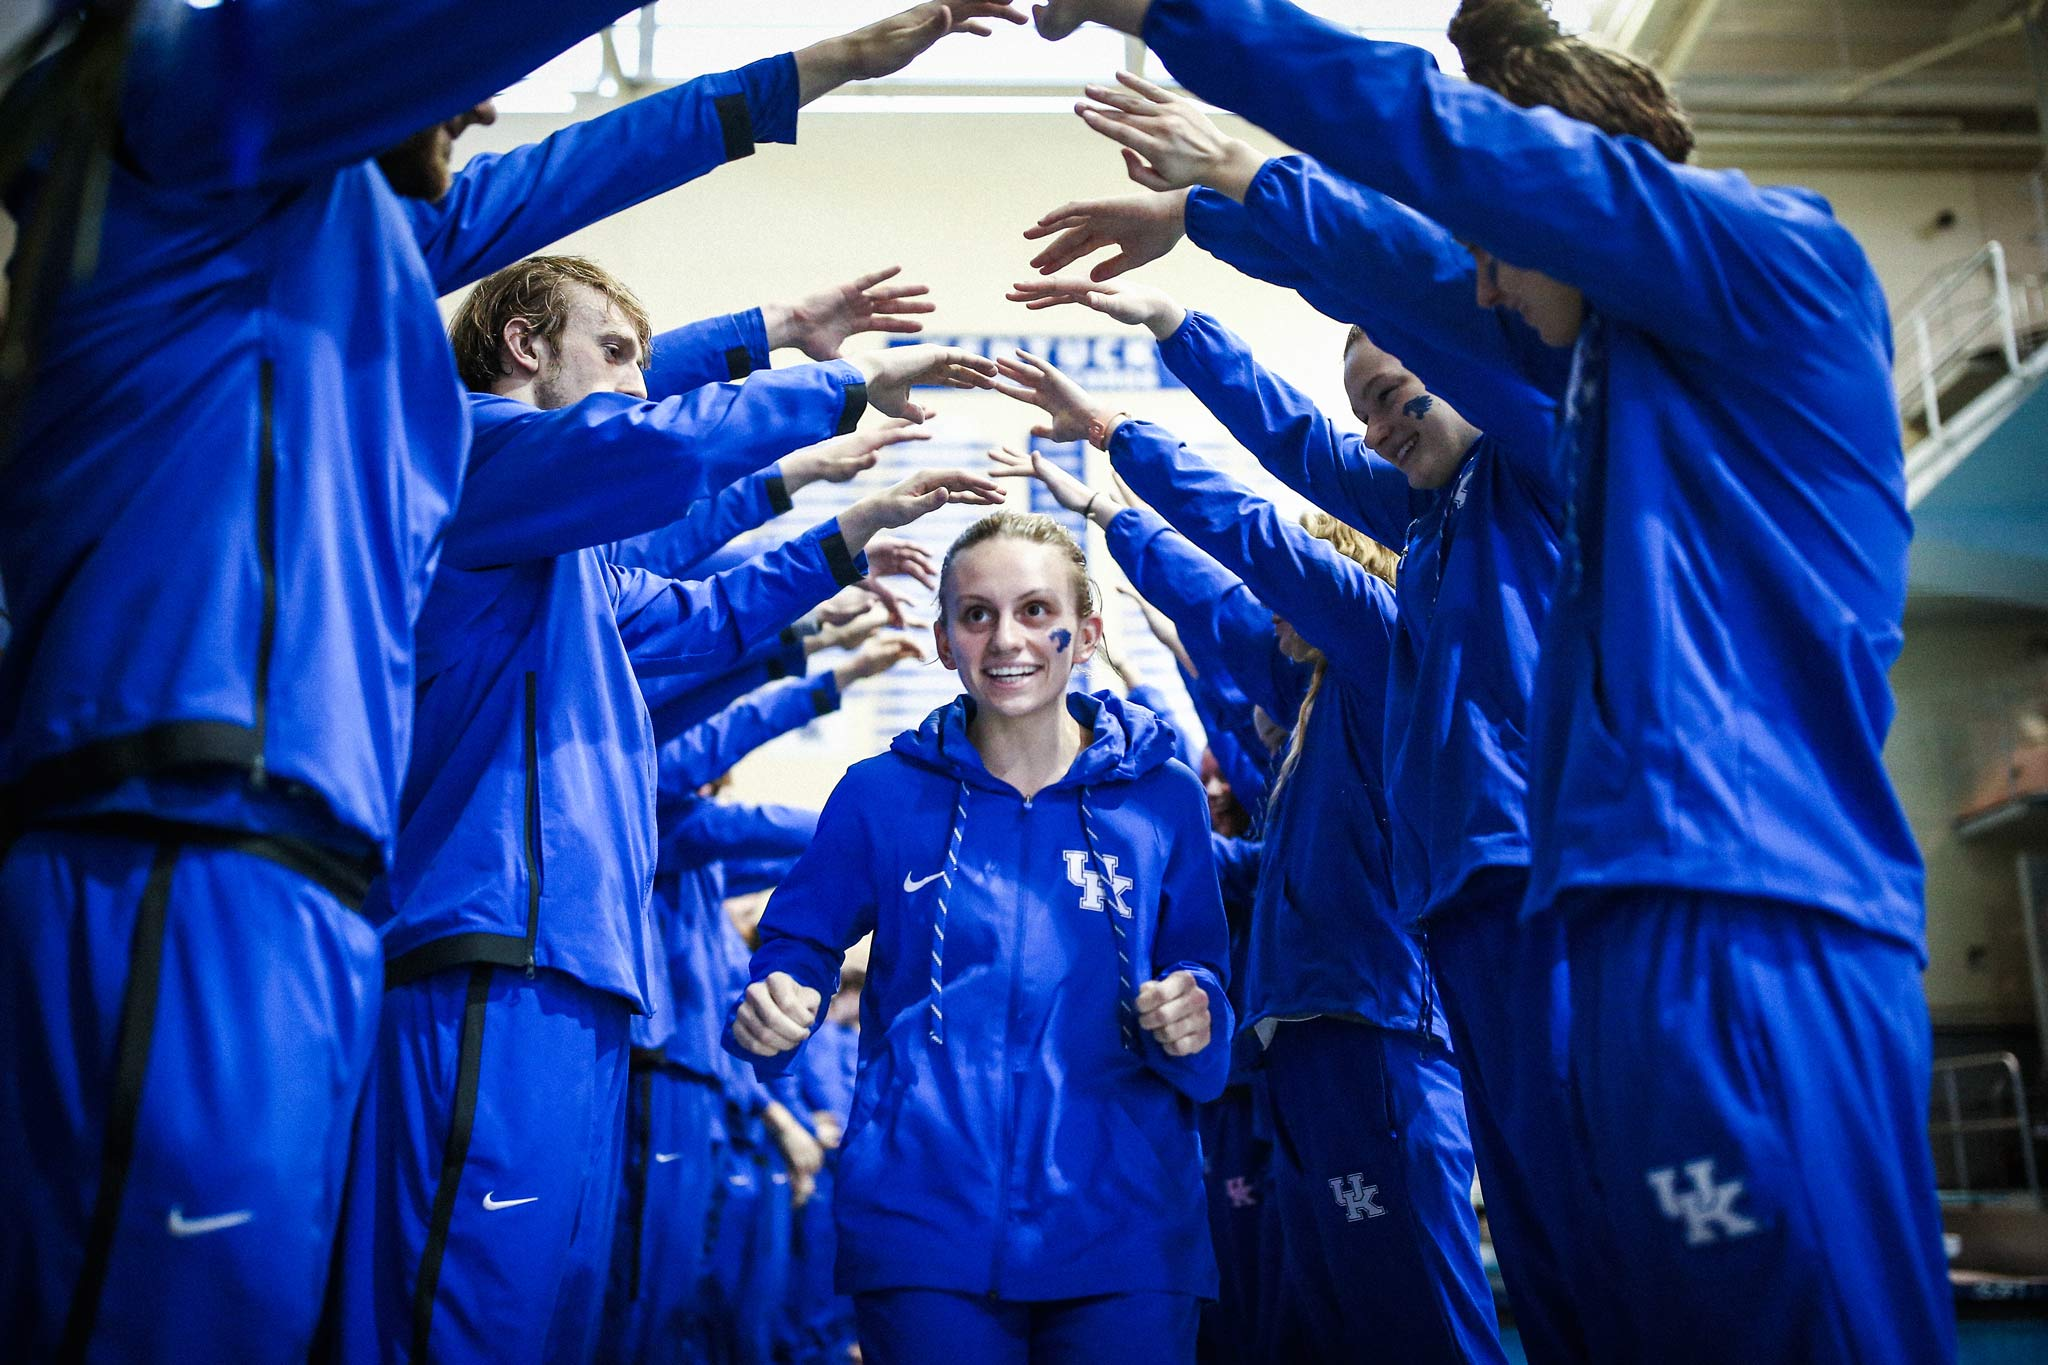 Emma, wearing a blue UK hoodie, runs between two rows of swimmers, all dressed in blue. They have their arms out, forming an arch that she's running through.